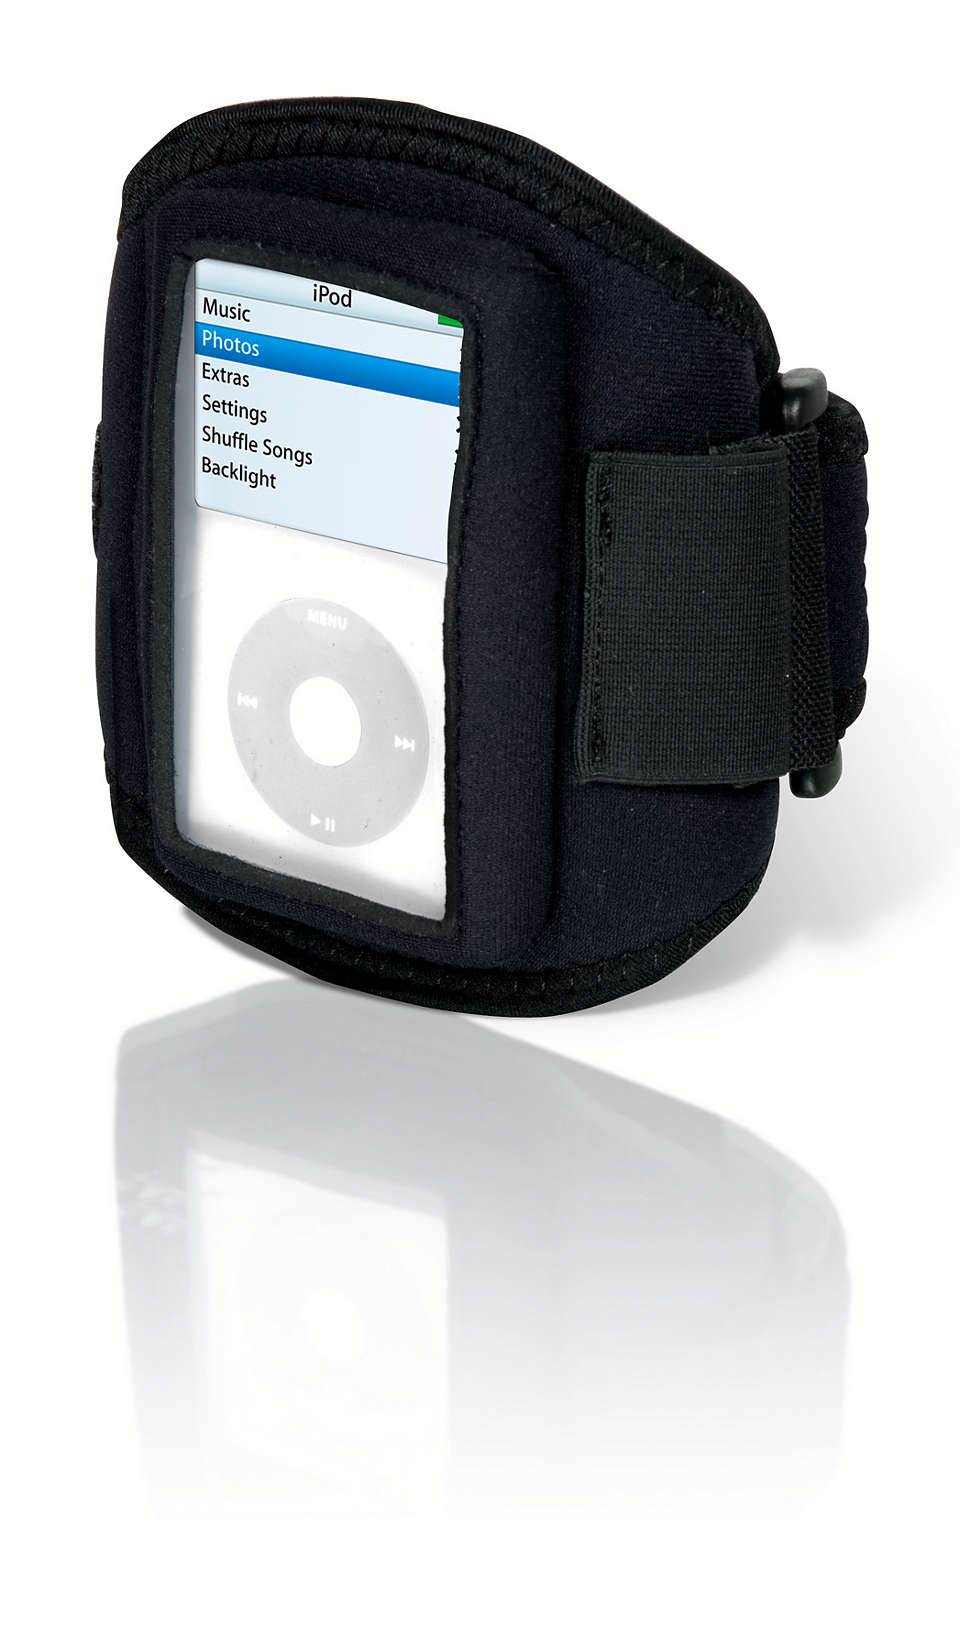 Workout with your MP3 player